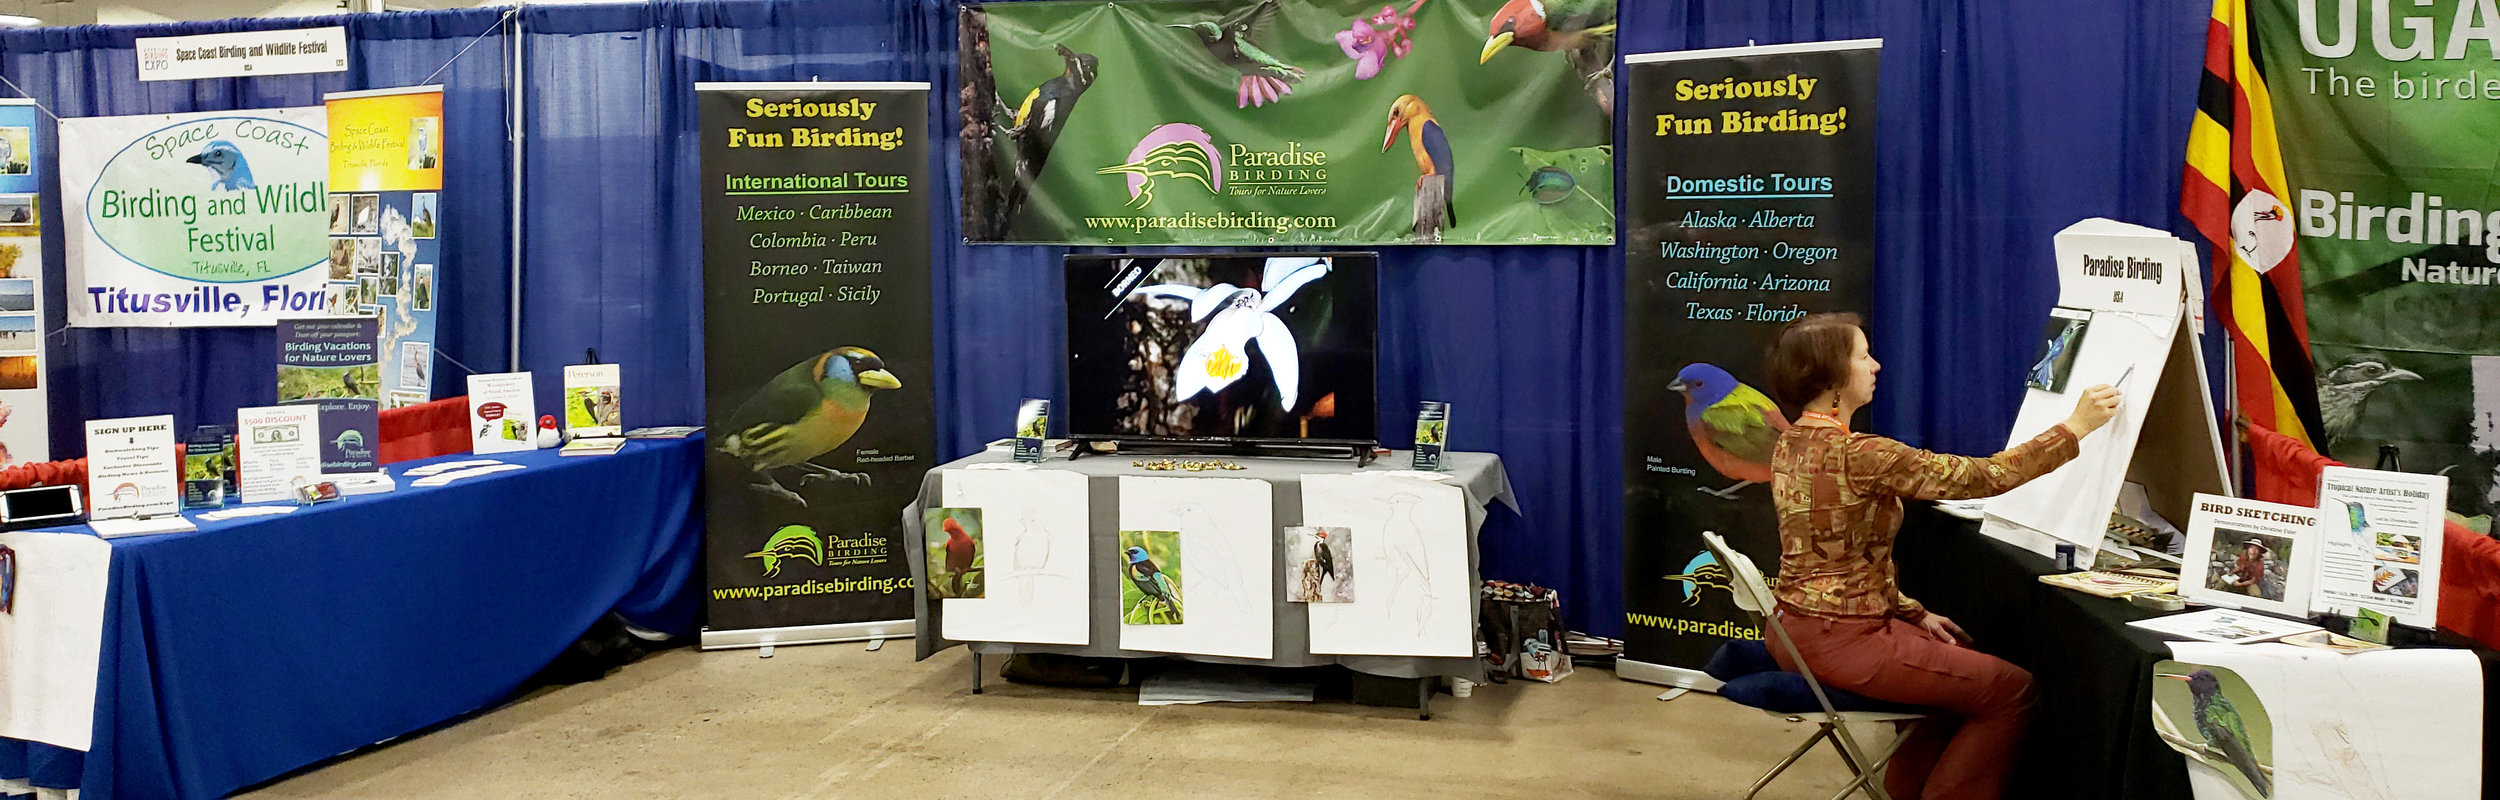 Paradise Birding booth at the 2018 American Birding Expo in Philadelphia, PA